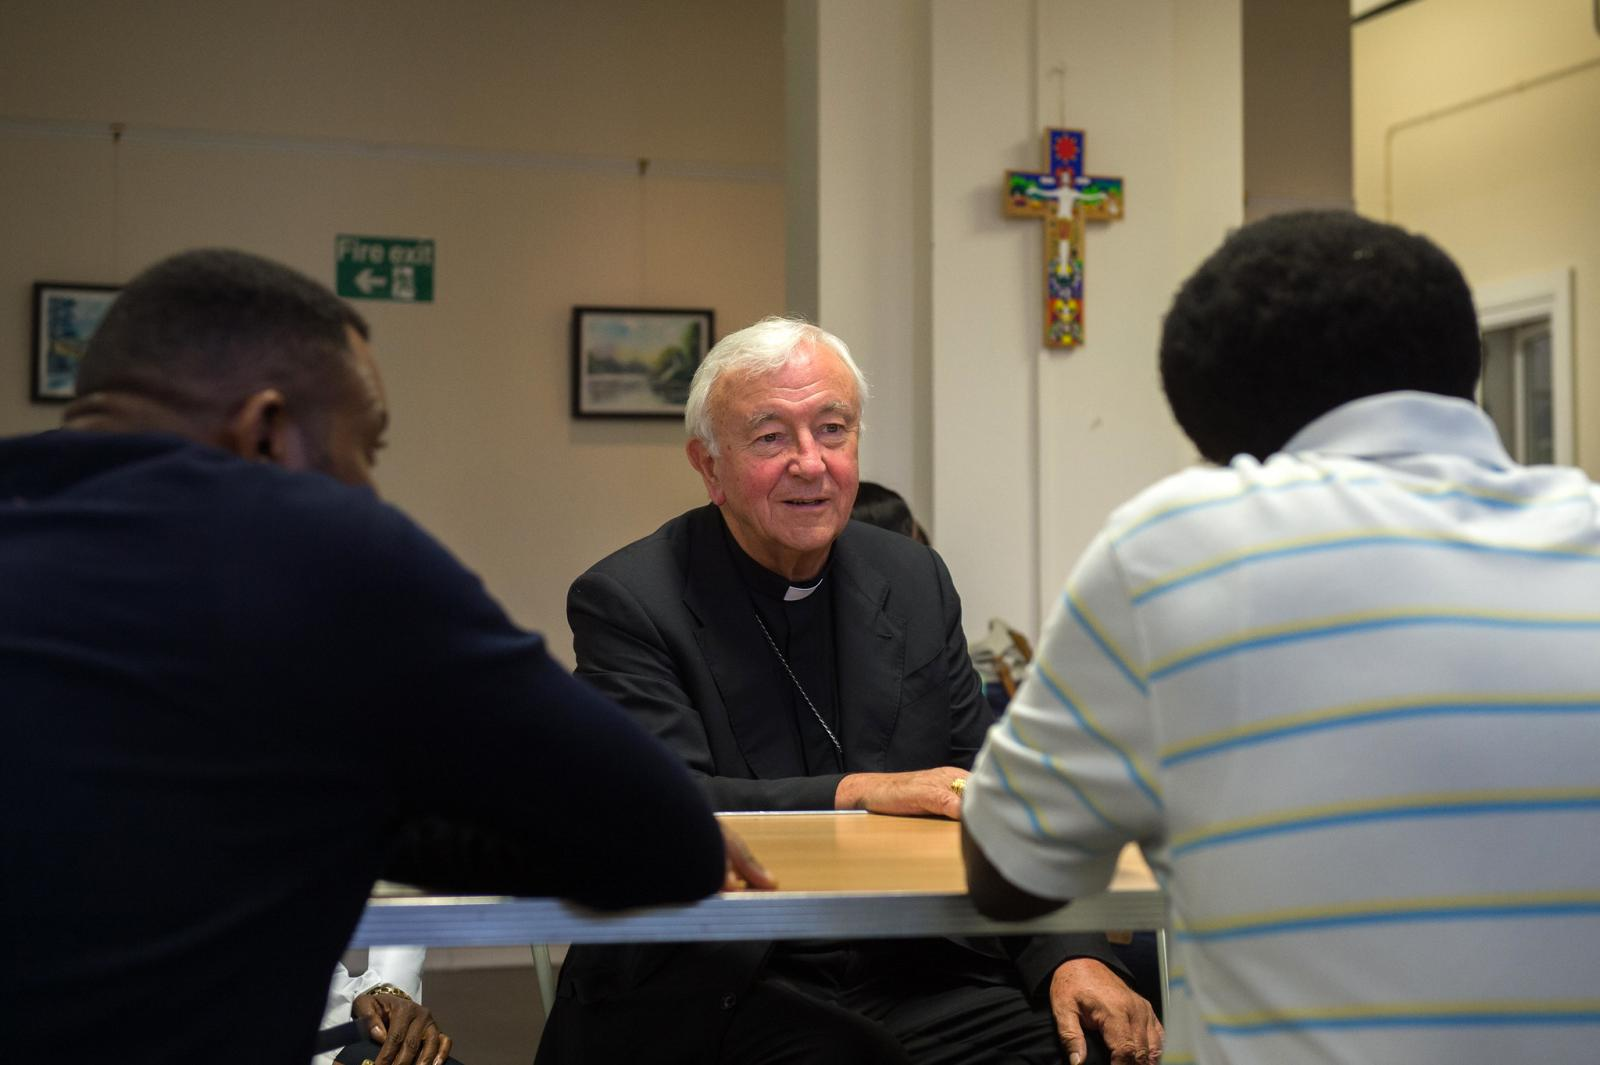 Cardinal Vincent Nichols - Diocese of Westminster